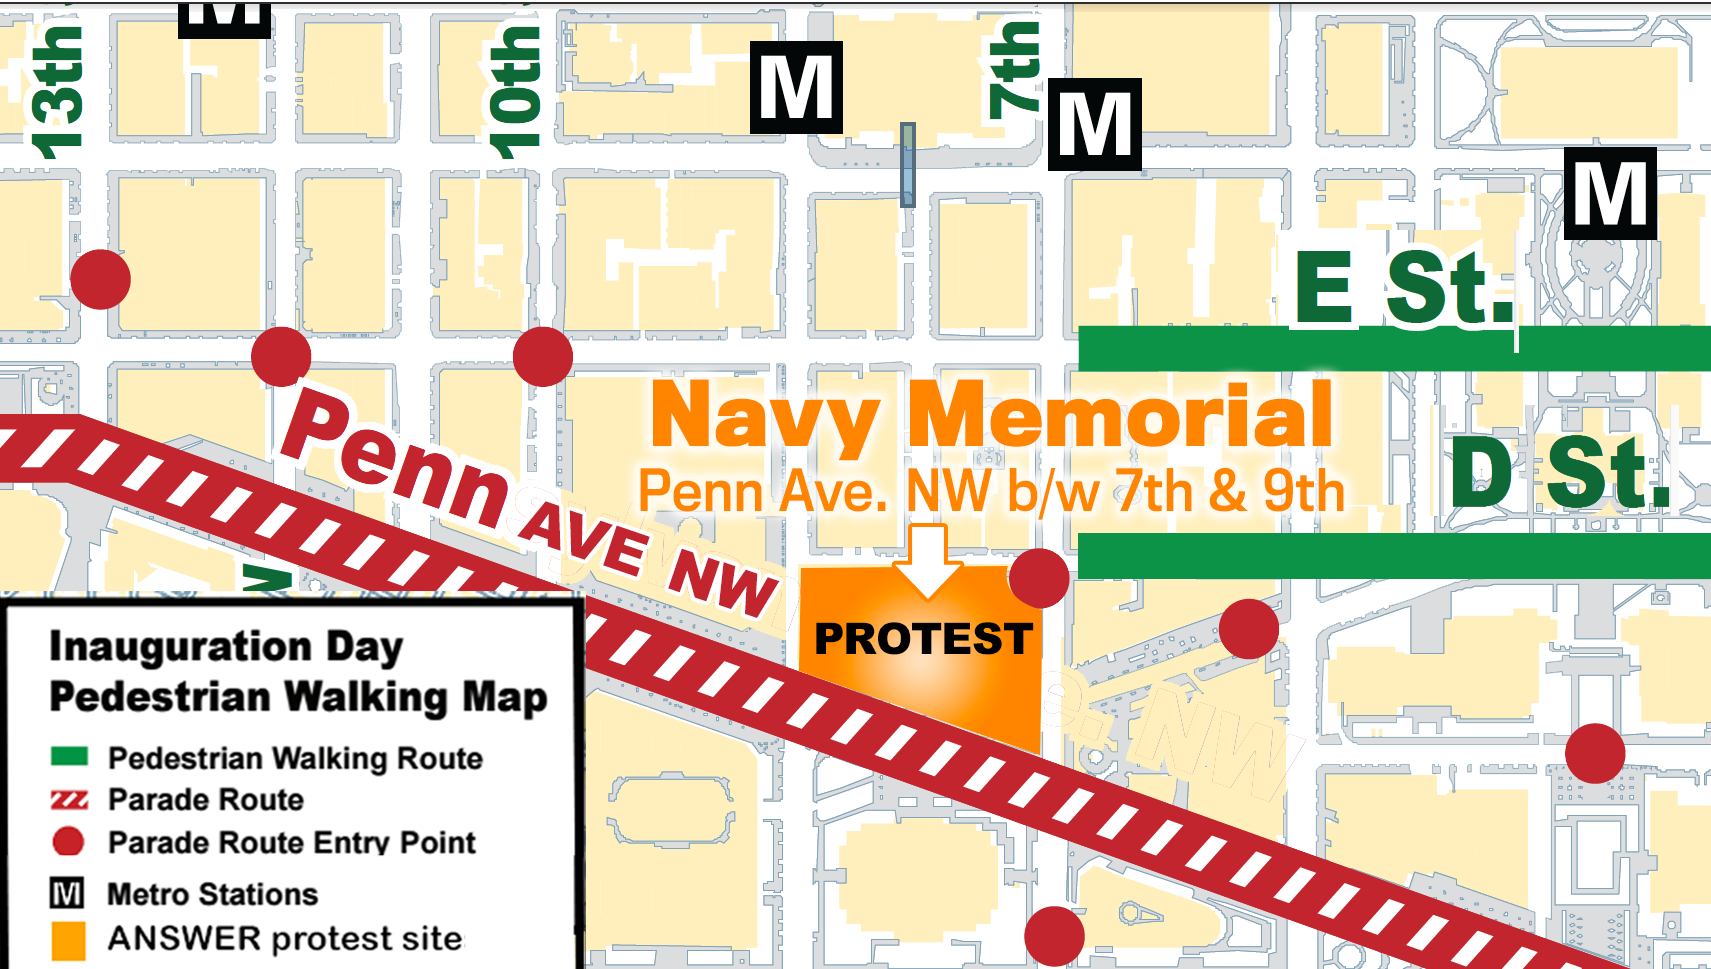 Logistical Information for Jan 20 protest maps and prohibited